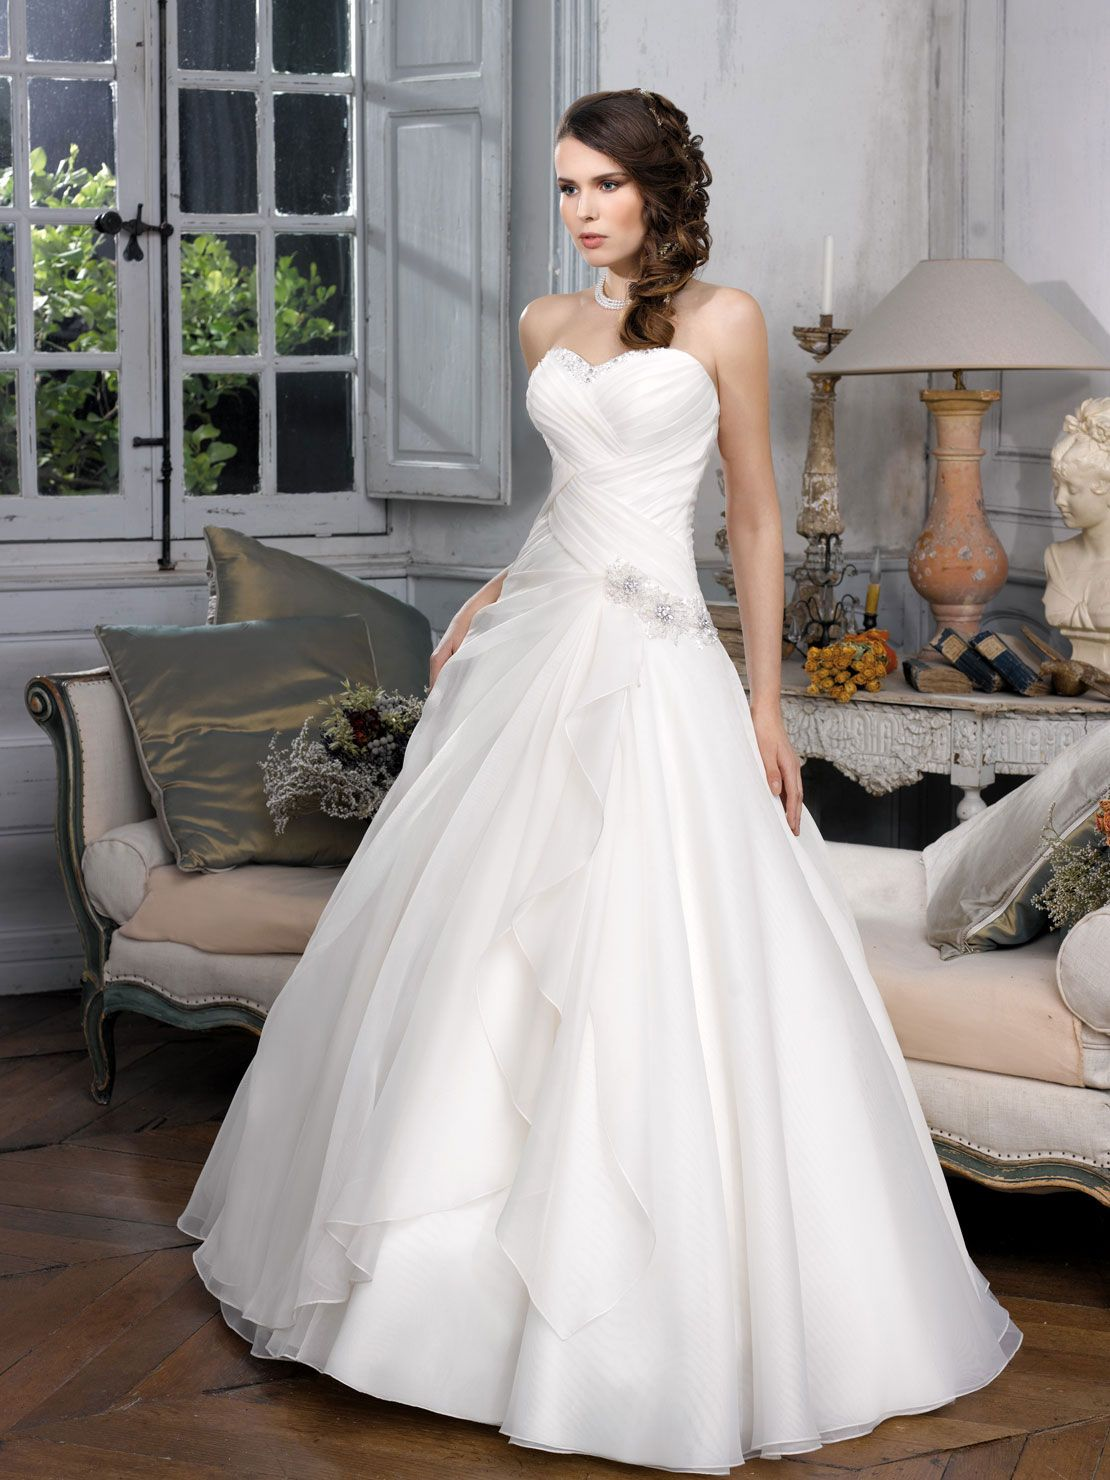 Ecru wedding dress  Collections   Robes mariées  Pinterest  Unique weddings